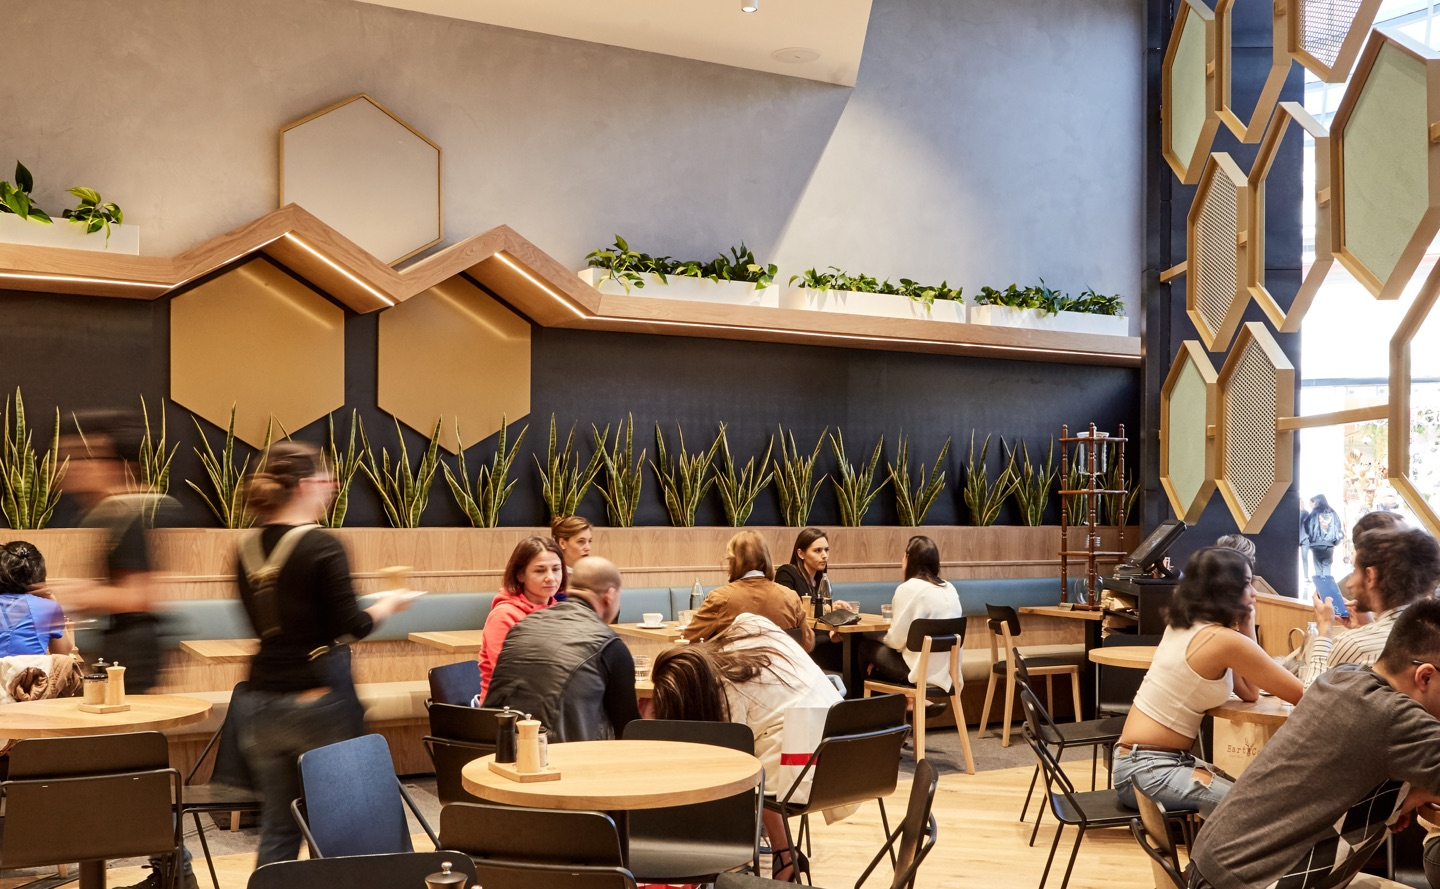 Axil coffee chadstone wall finish concrete kelso